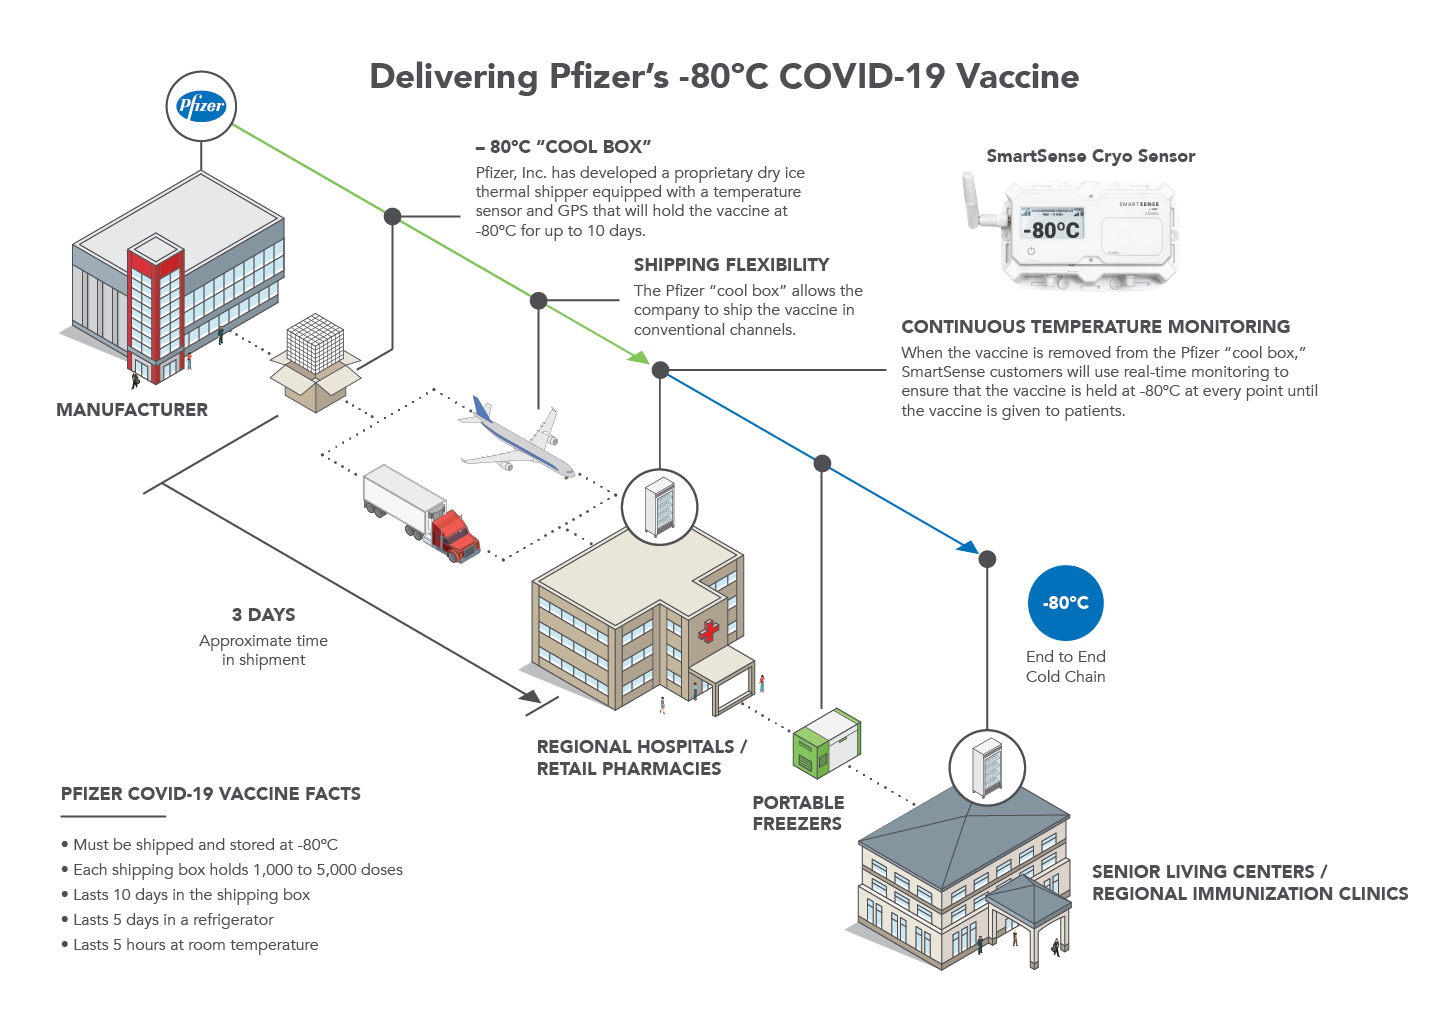 Delivering Pfizer's -80°C COVID-19 Vaccine